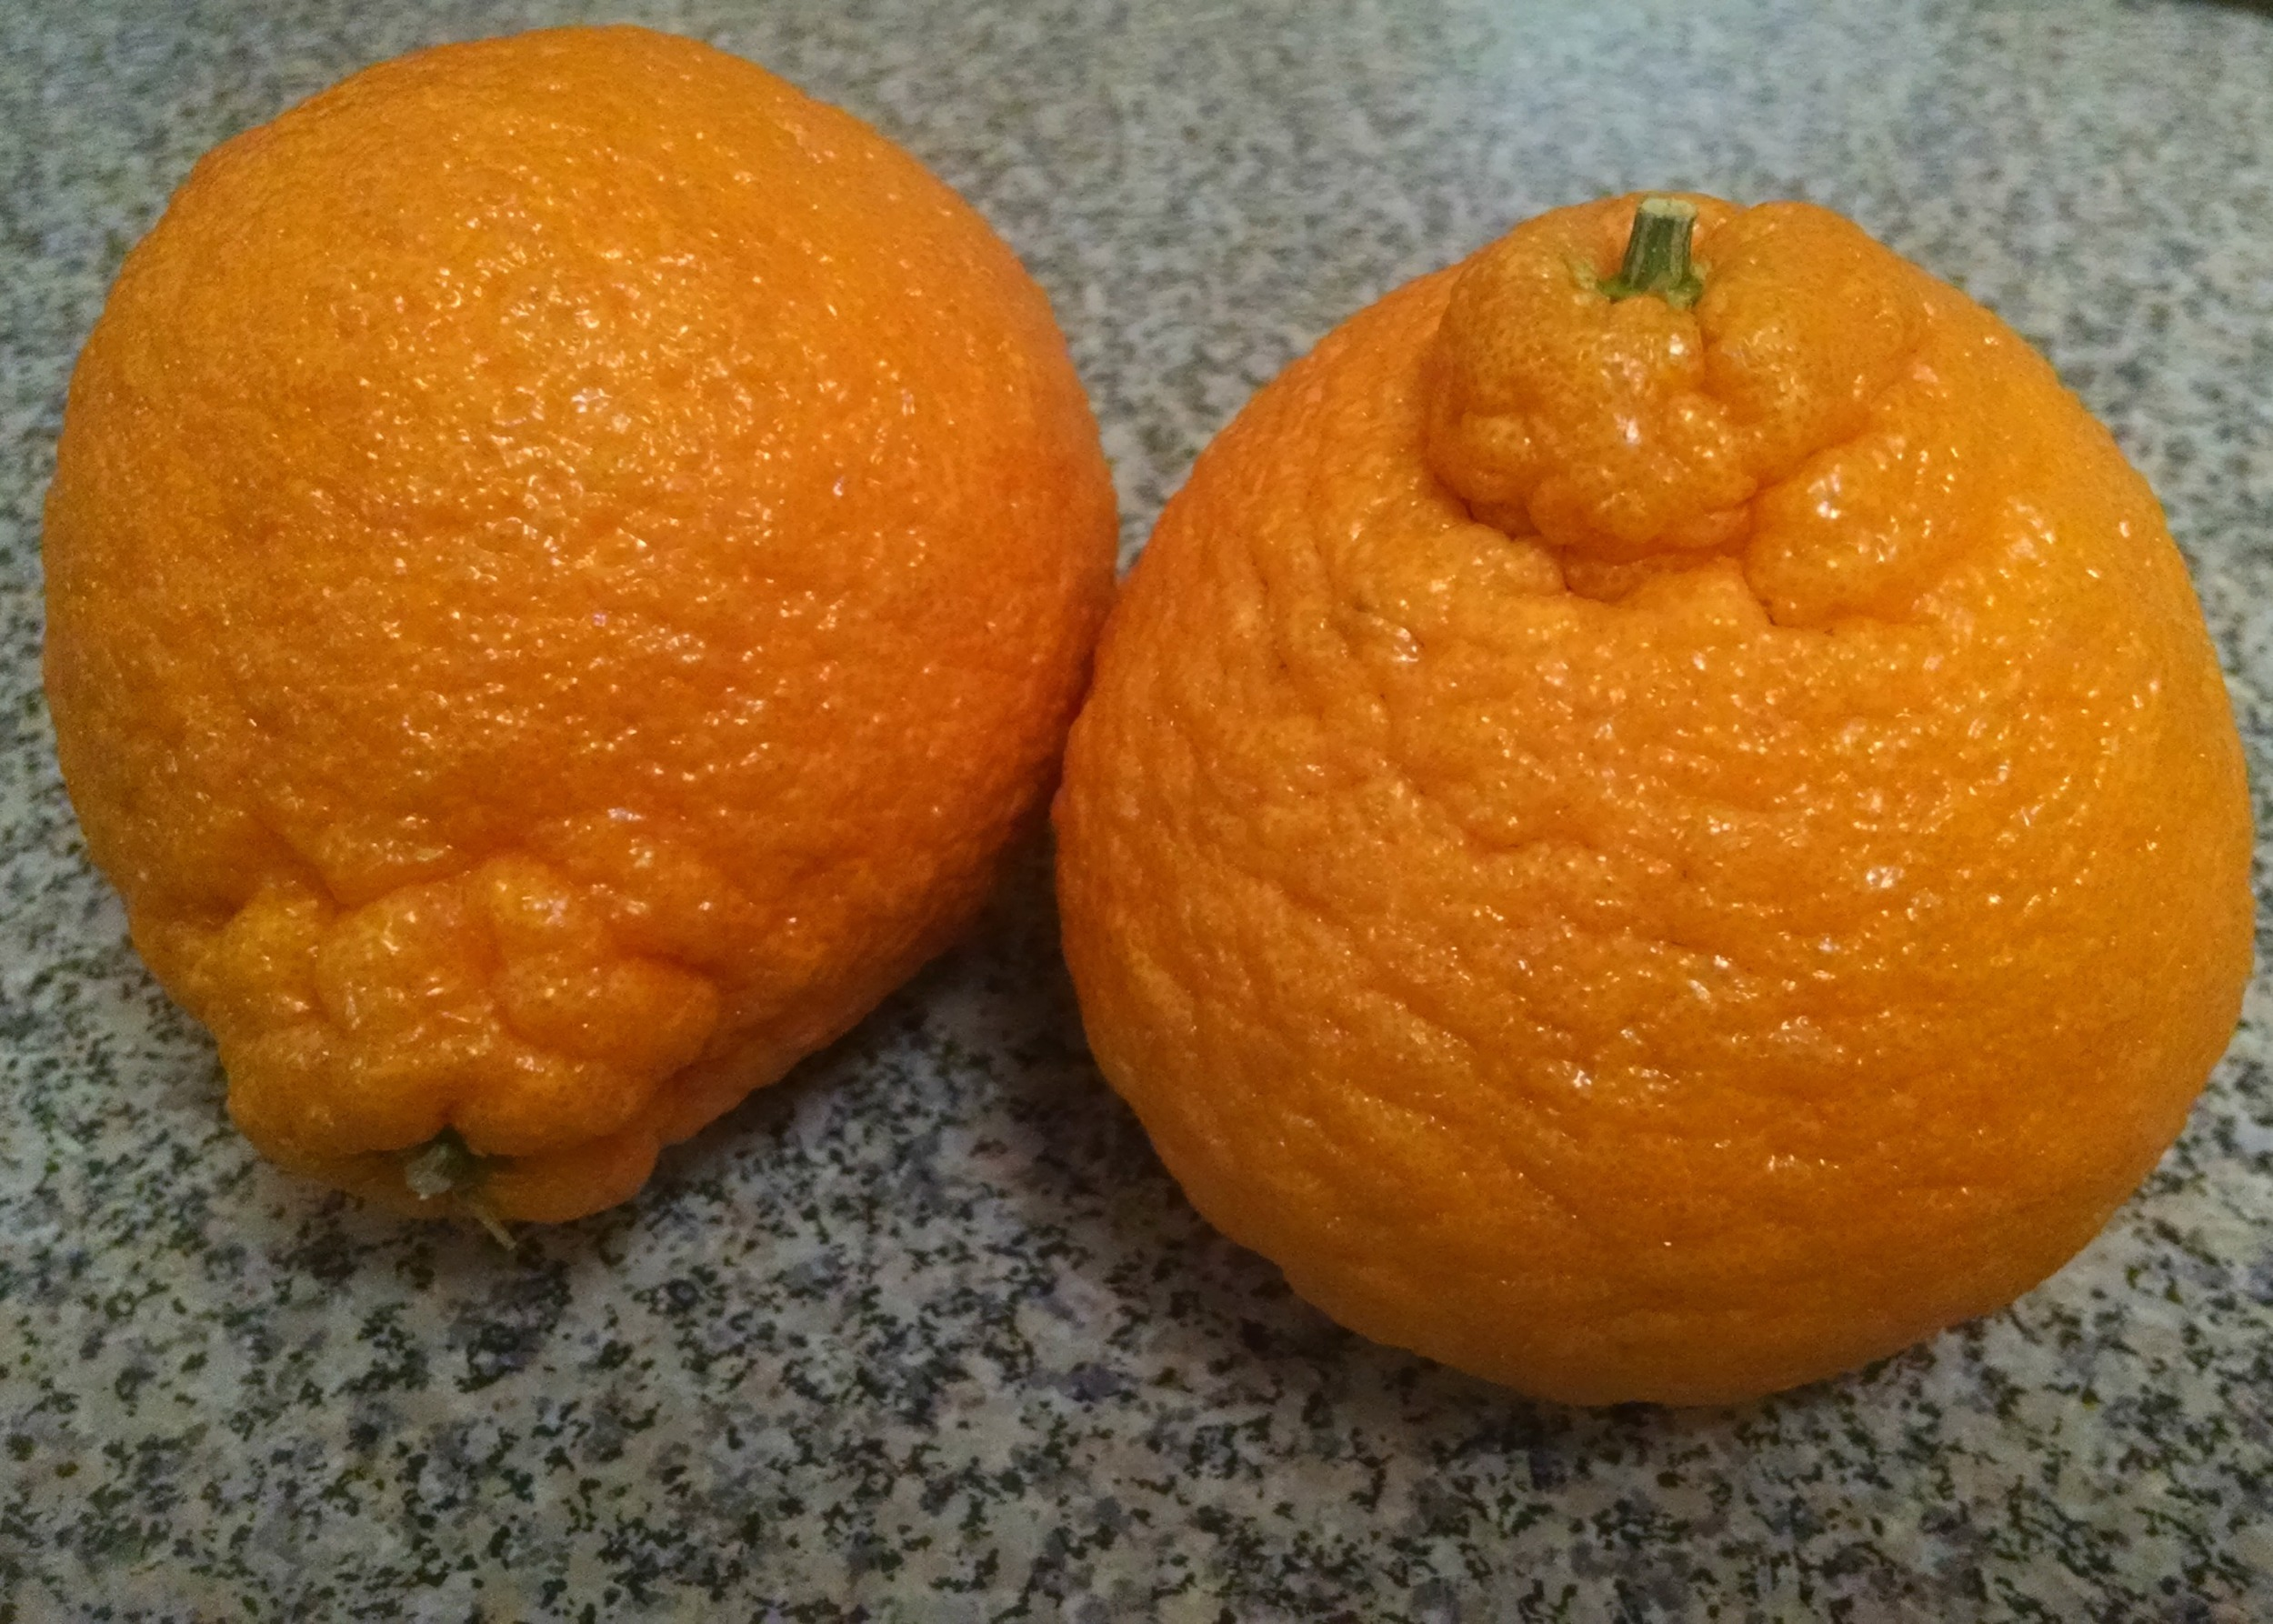 Bigger than an orange but smaller than a grapefruit.